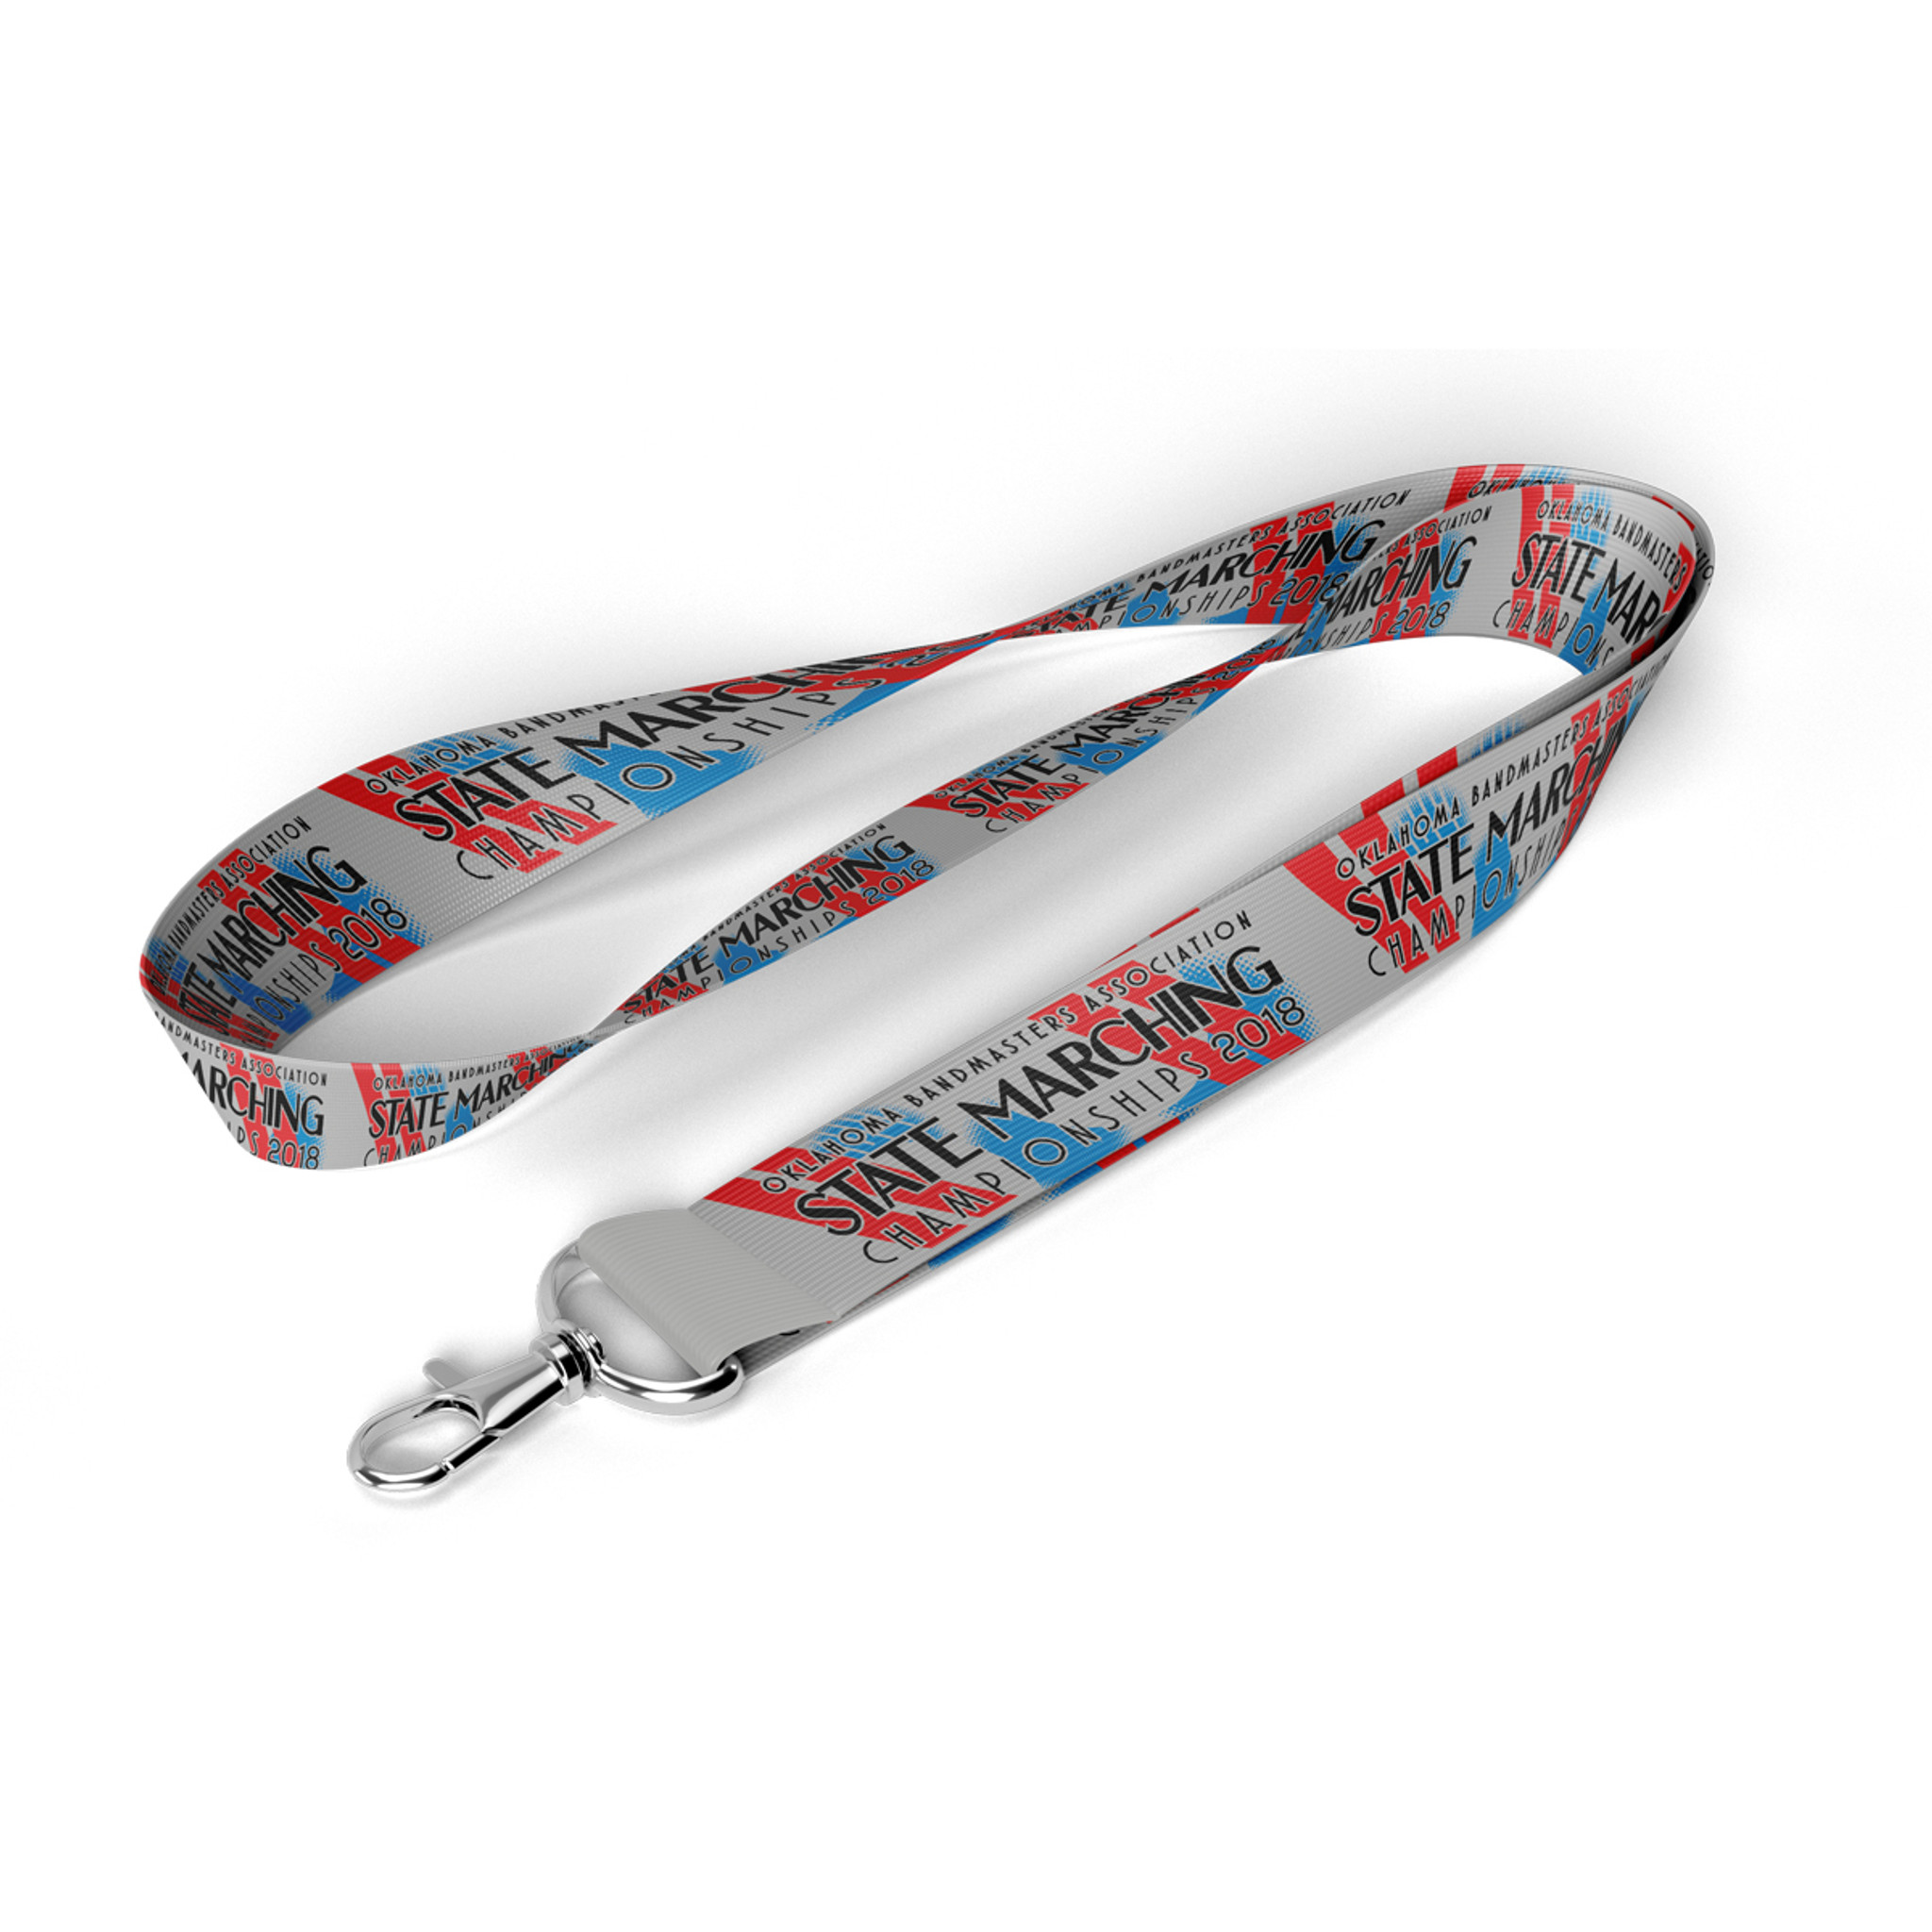 2018 OBA State Marching Band Championships Event Lanyard